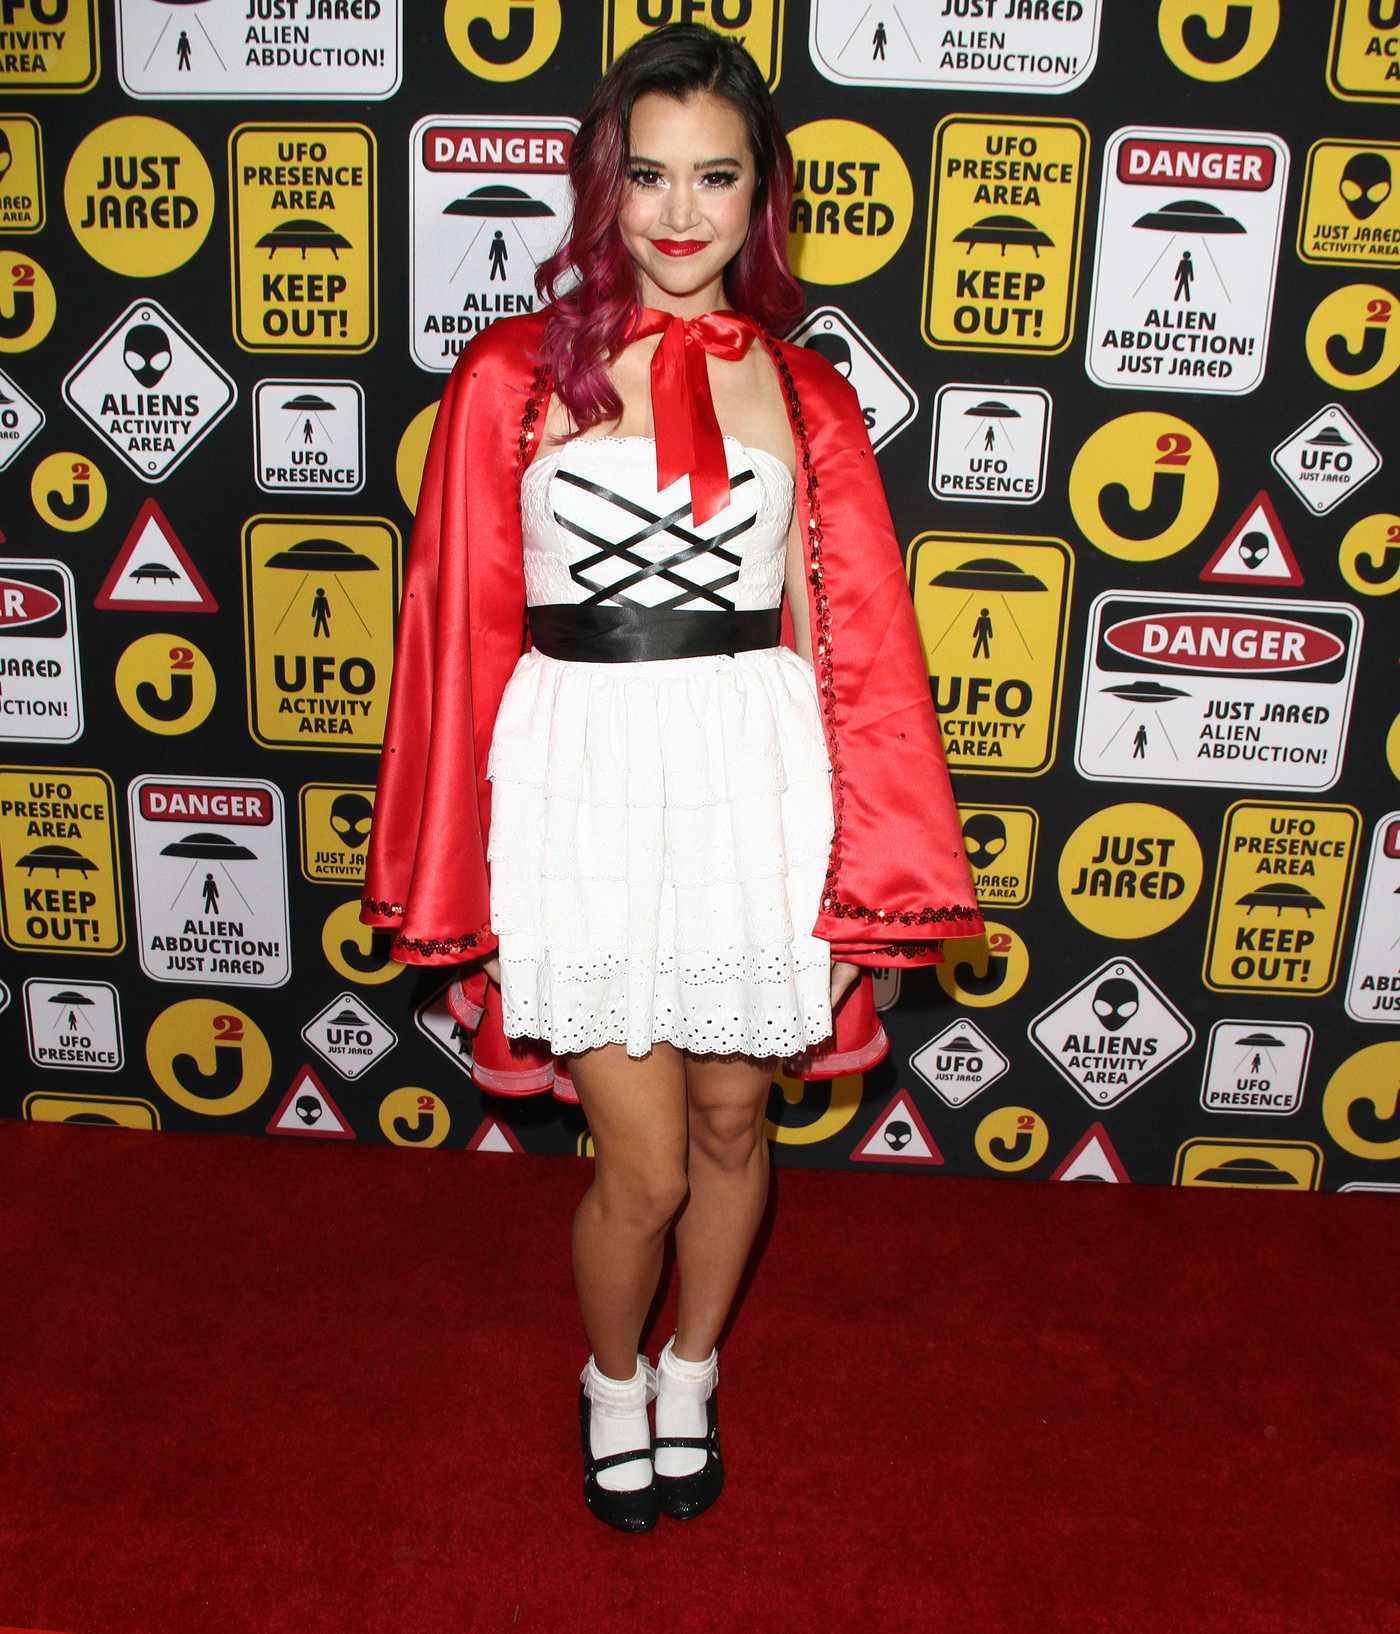 Megan Nicole at the Just Jared Annual Halloween Party in Los Angeles 10/30/2016